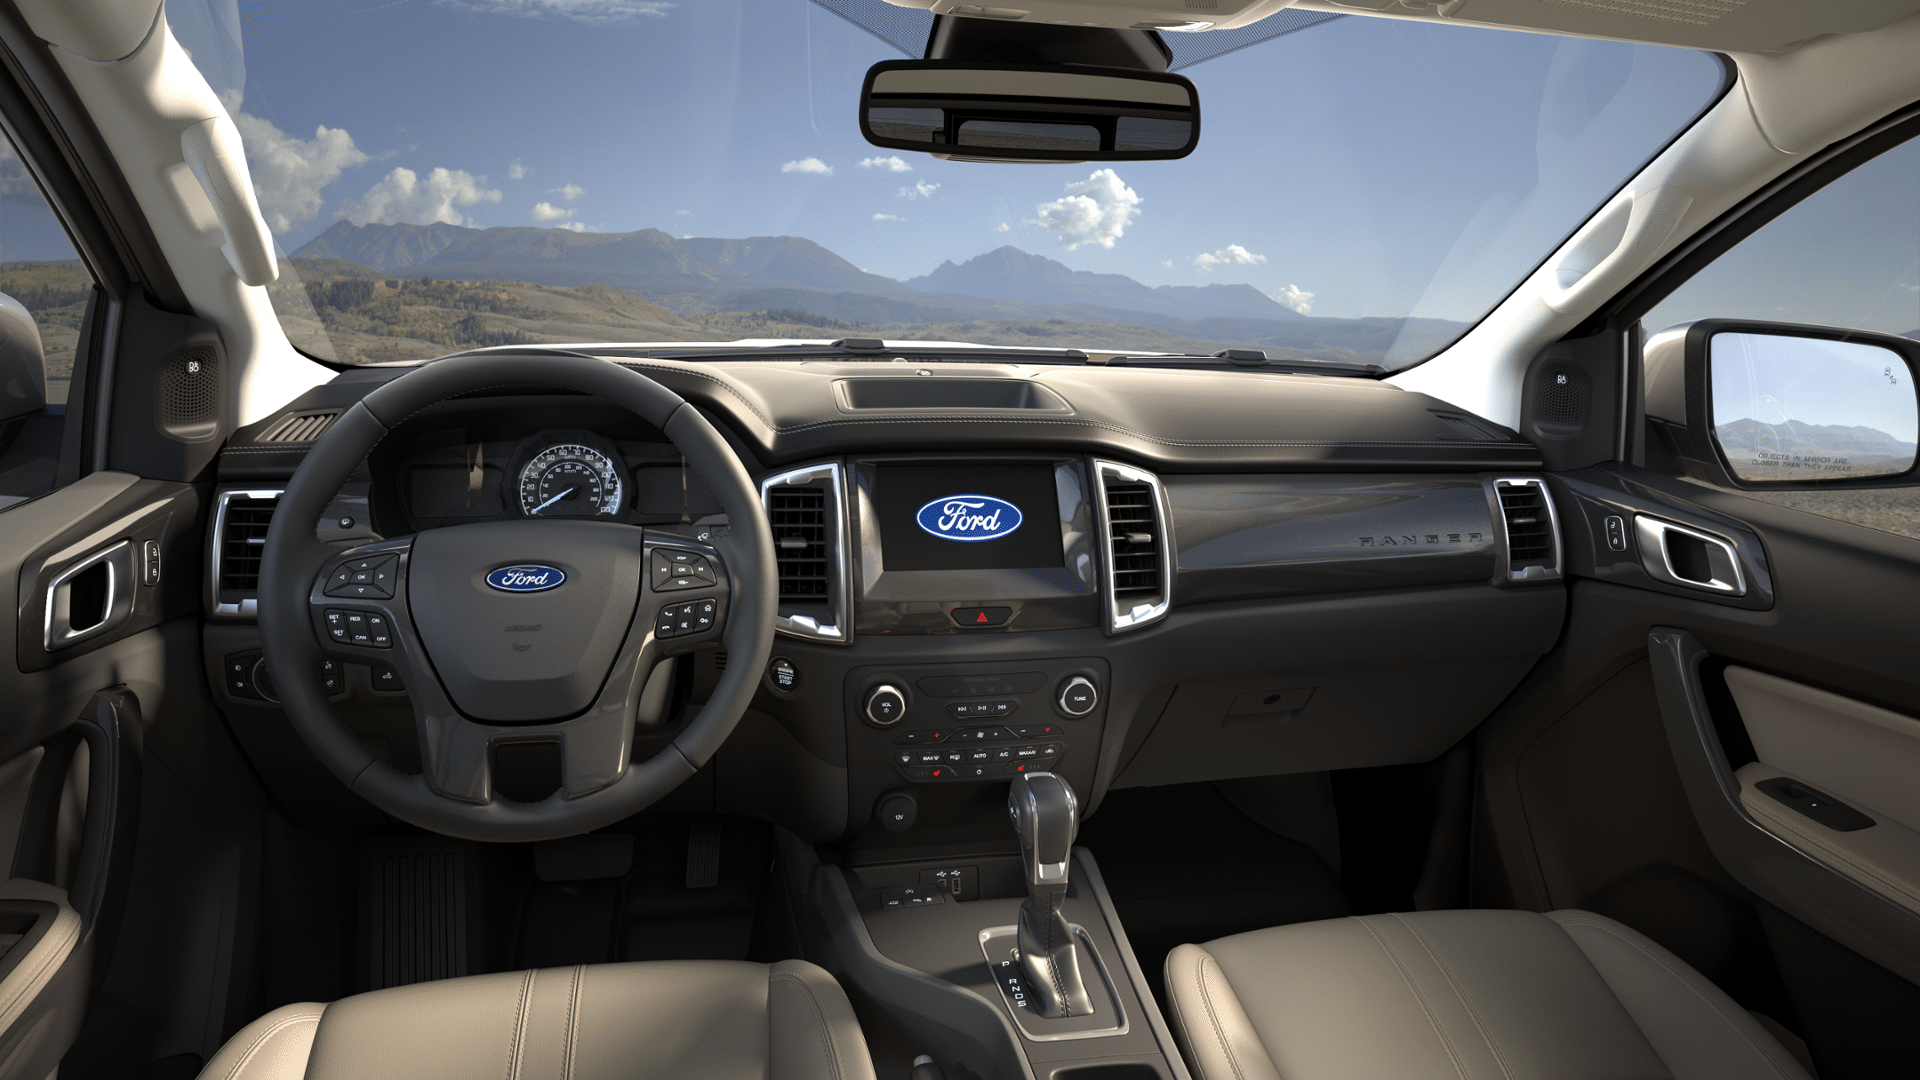 Interior View Of With Images Ford Ranger Interior Ford Ranger